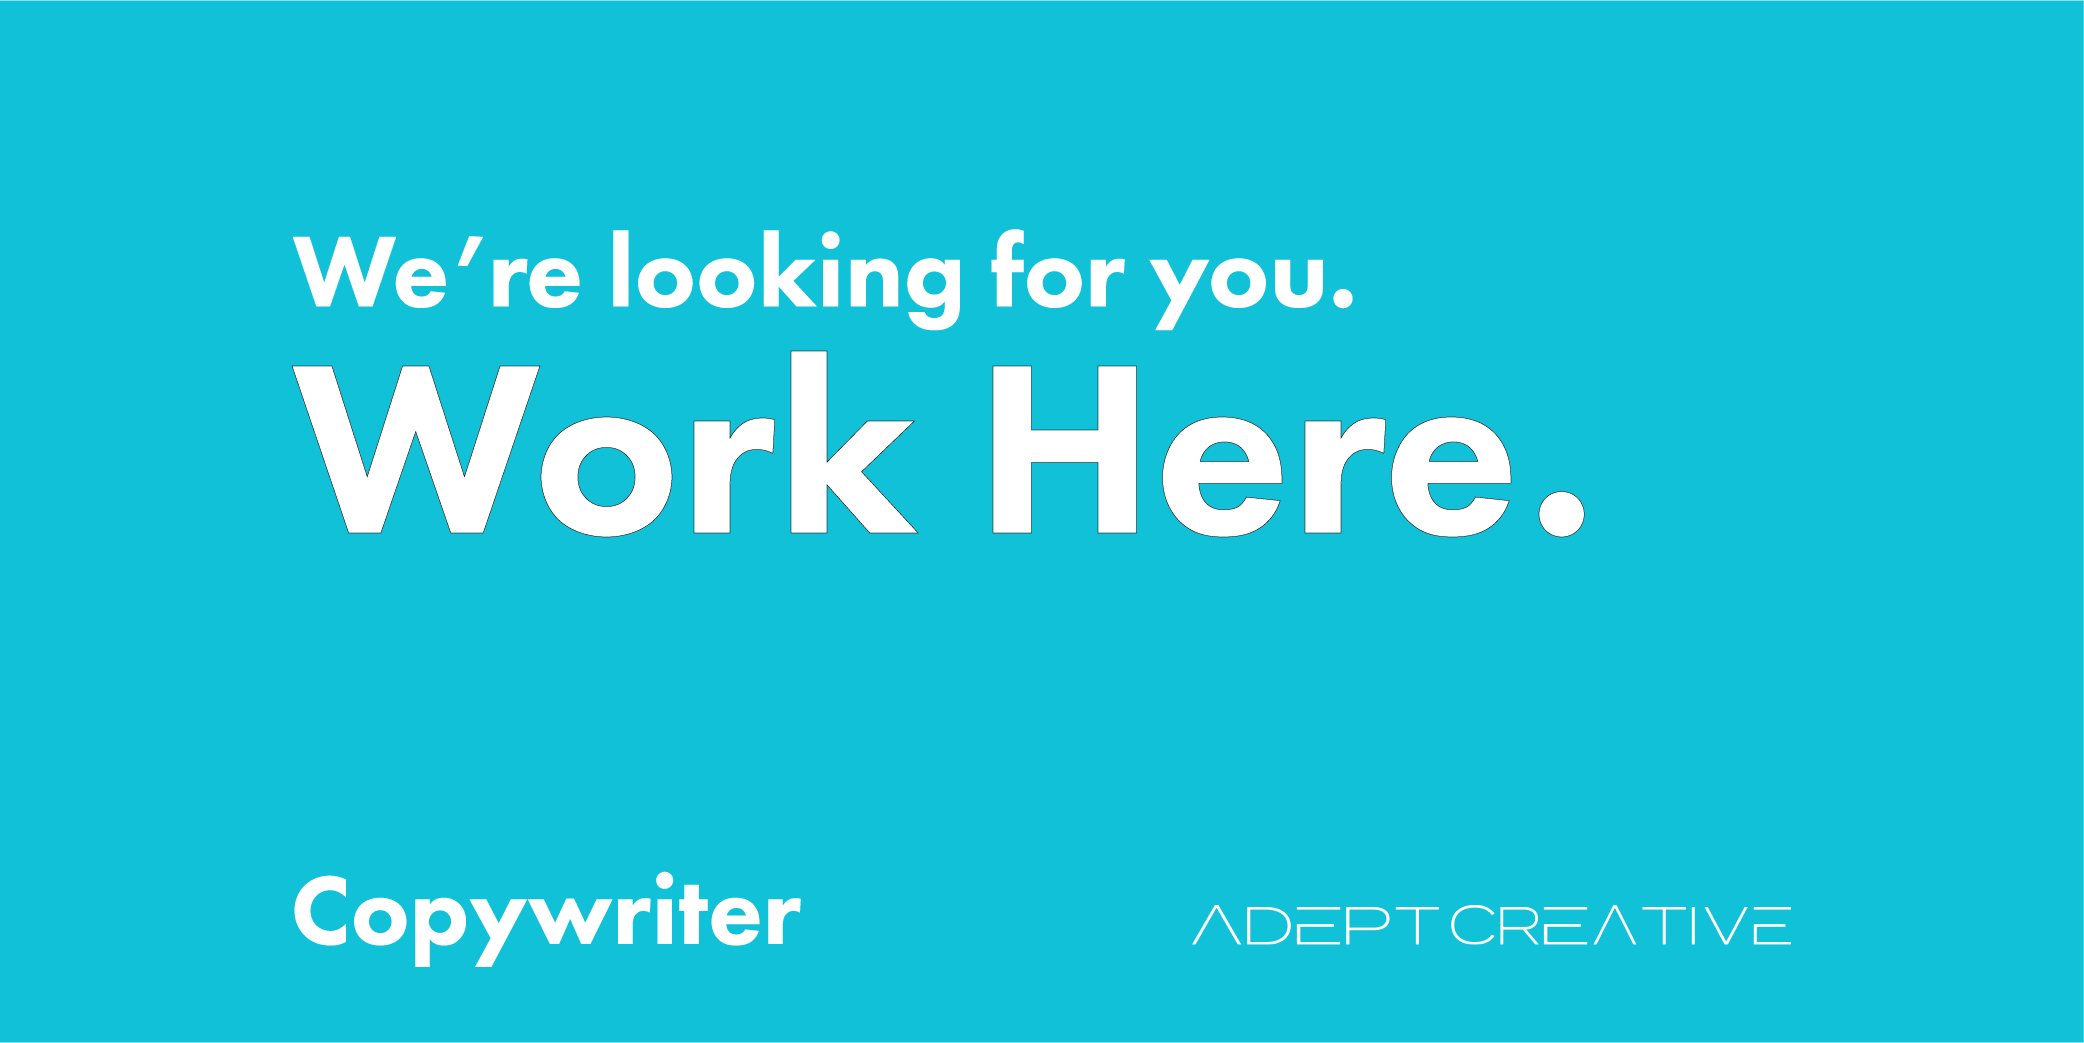 Copywriter wanted Work here at Adept Creative